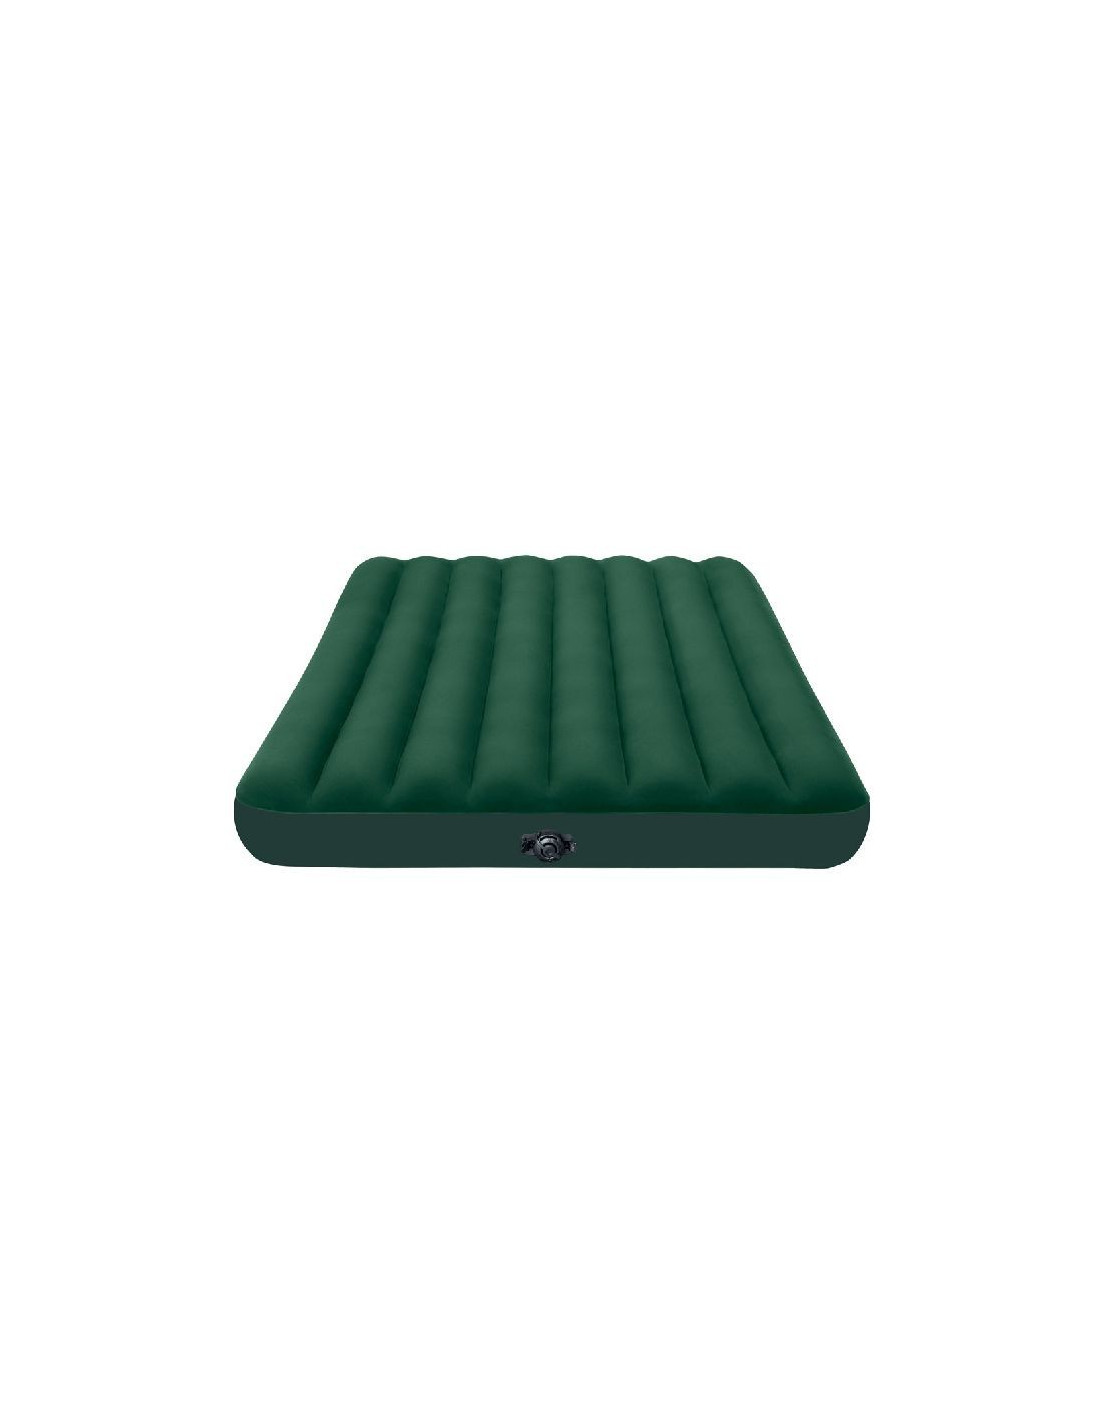 Intex matelas lit gonflable 2 places intex 137 x 191 x 22 cm hyper brico - Matelas lit 2 places ...